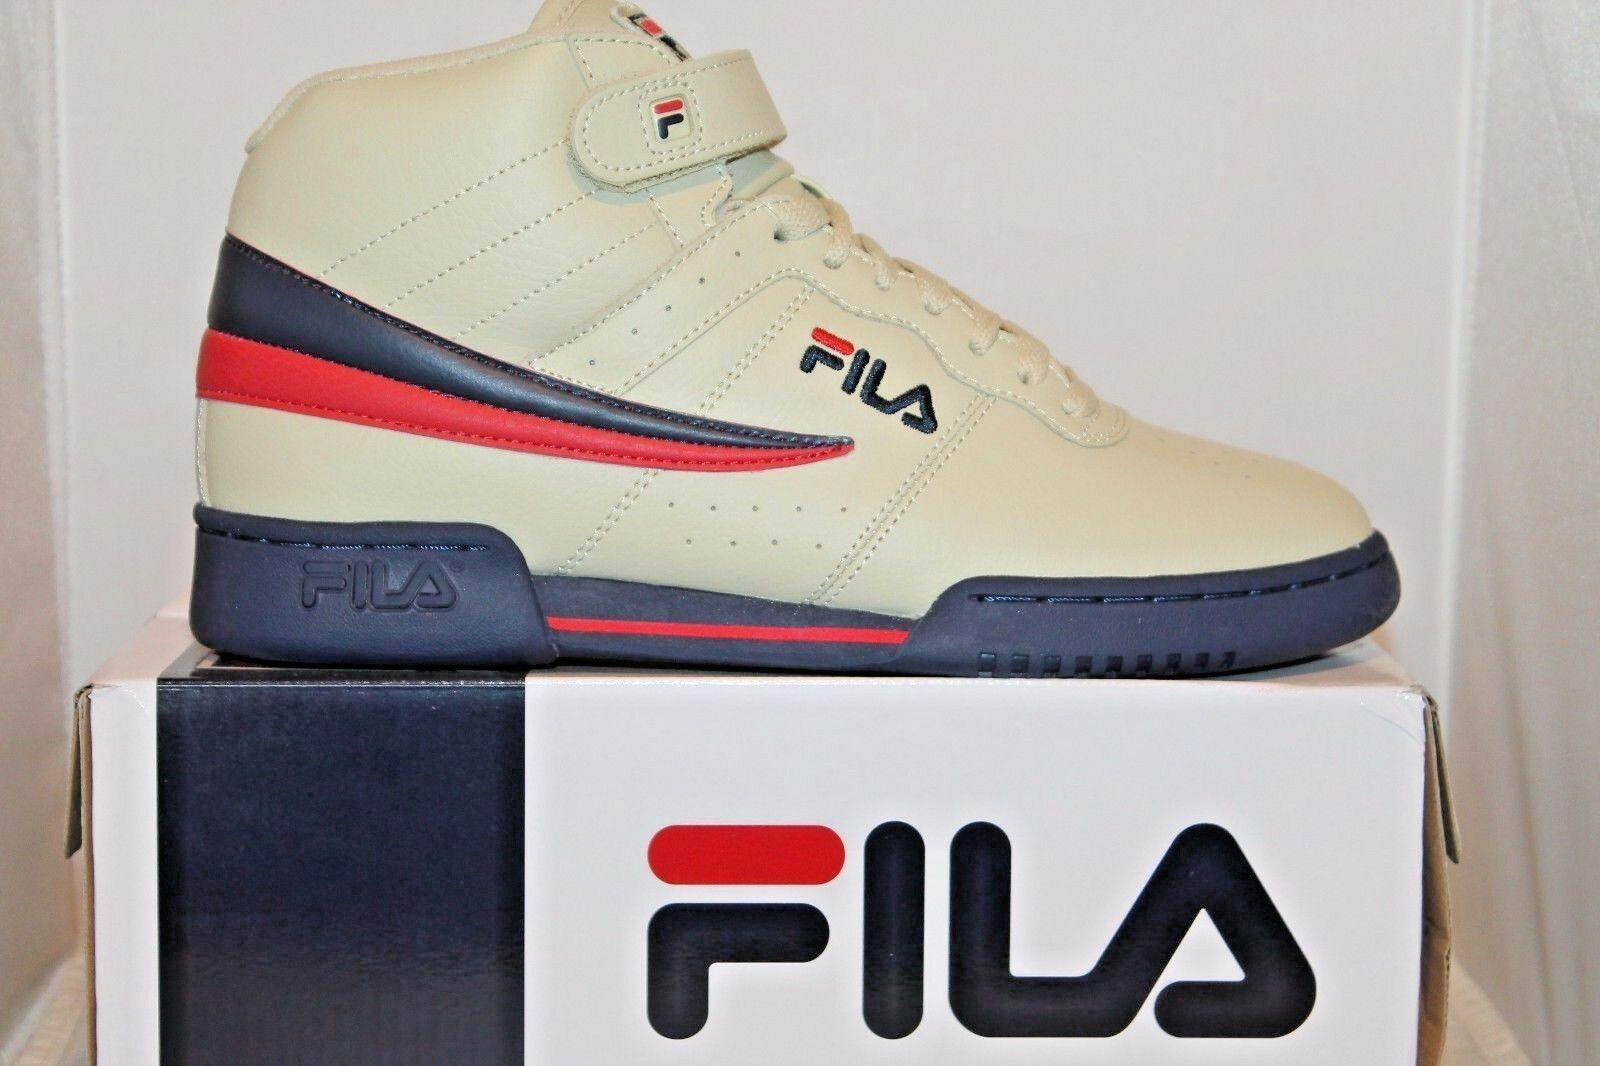 Mens Fila F13 F-13 Classic Mid High Top Basketball shoes Sneakers Cream and Navy